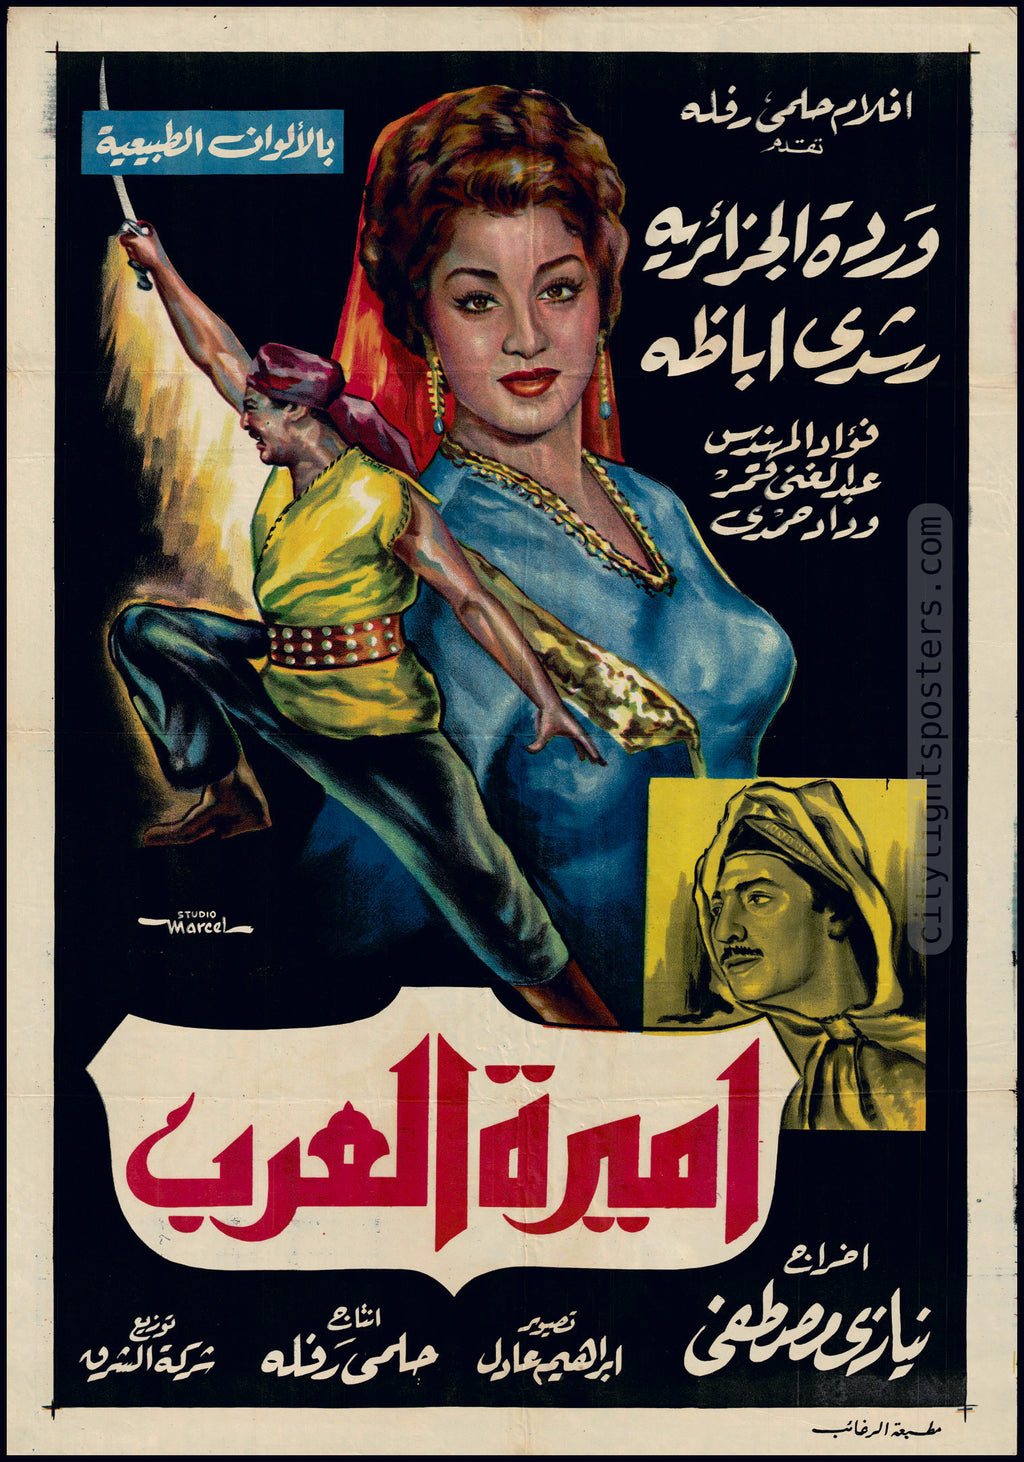 Princess of the Arabs - أميرة العرب